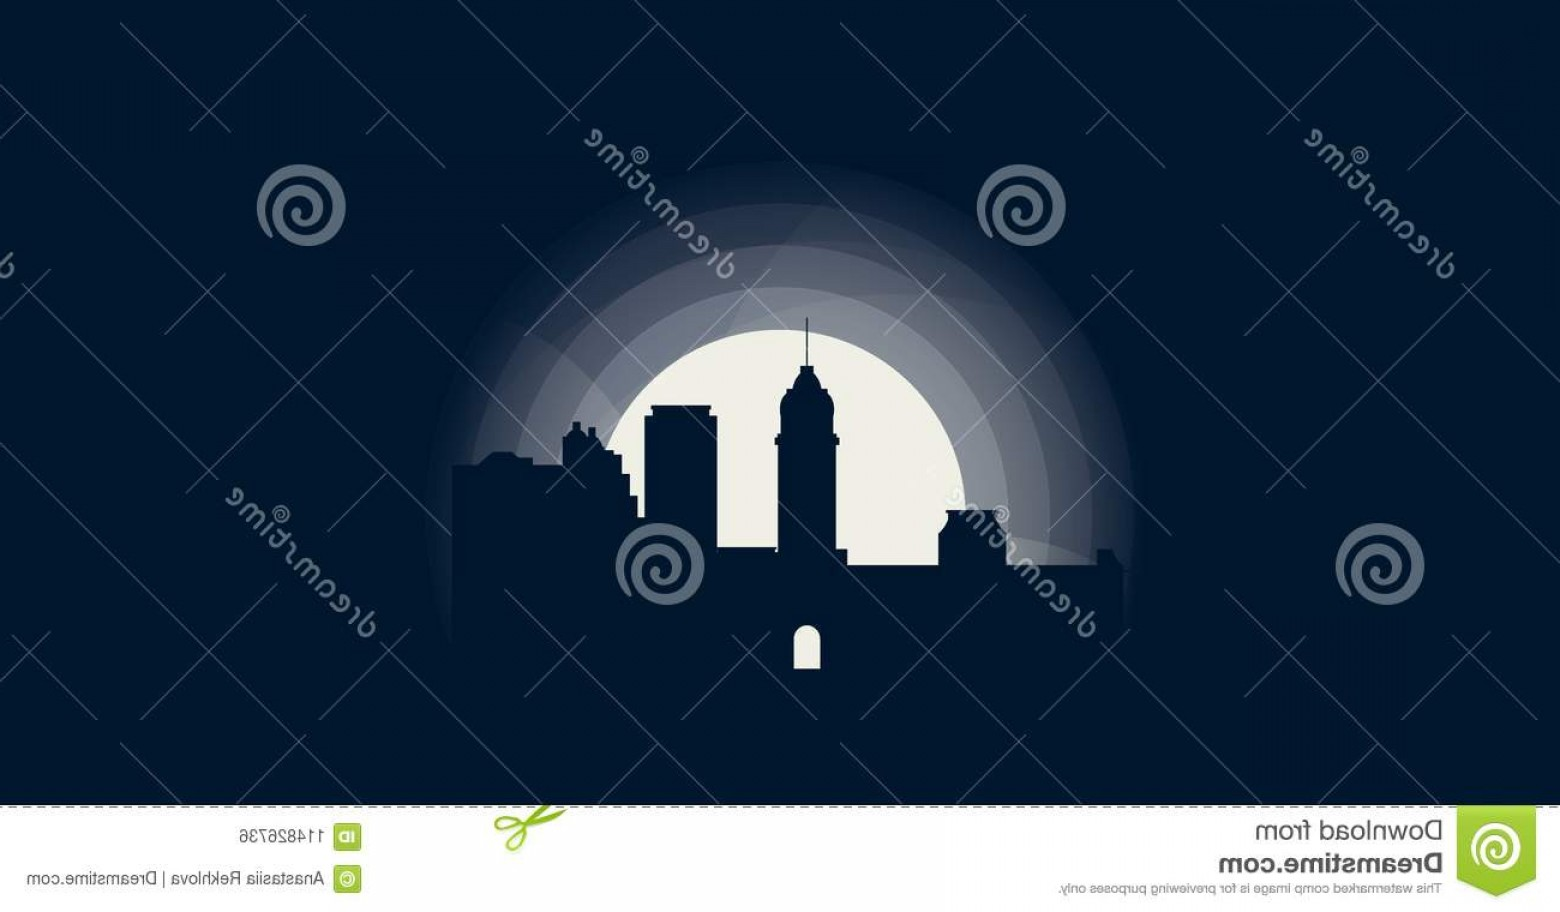 City Of Honolulu At Night Vector: Honolulu City Skyline Silhouette Vector Logo Illustration Usa United States America Landscape Night Icon Cool Urban Horizon Image